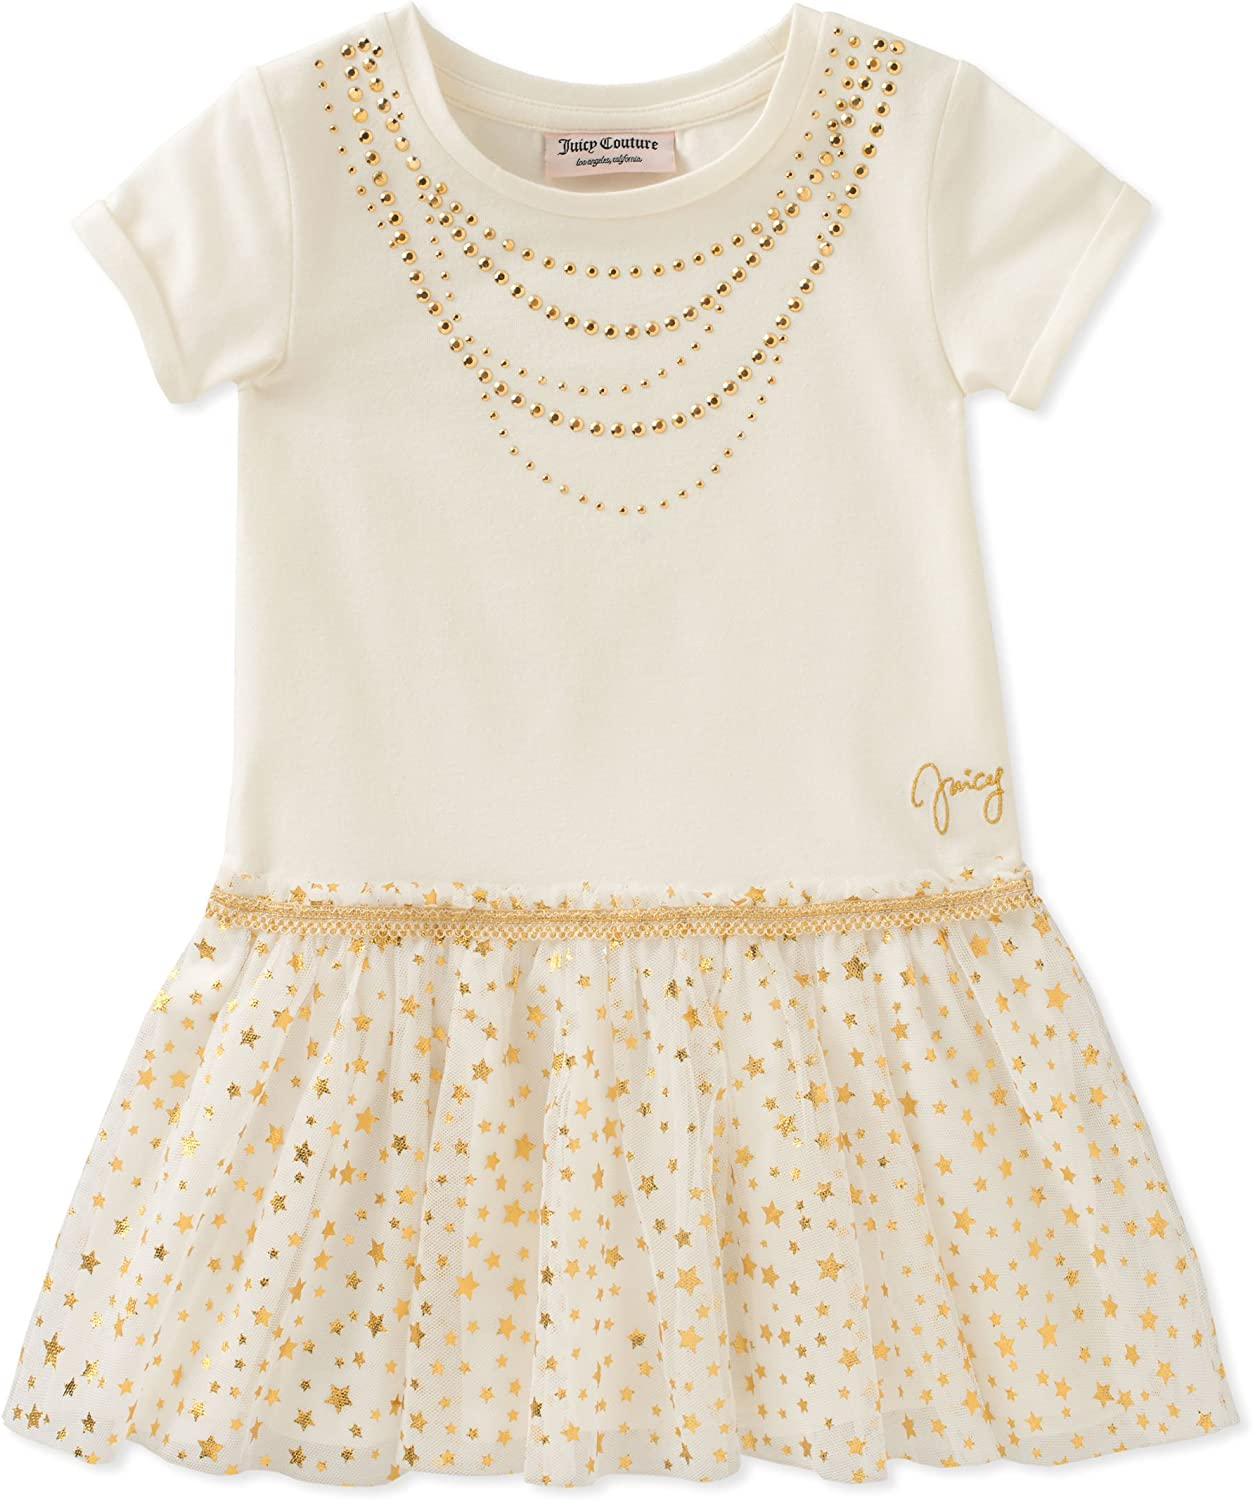 Juicy Couture Girls' Casual Dress